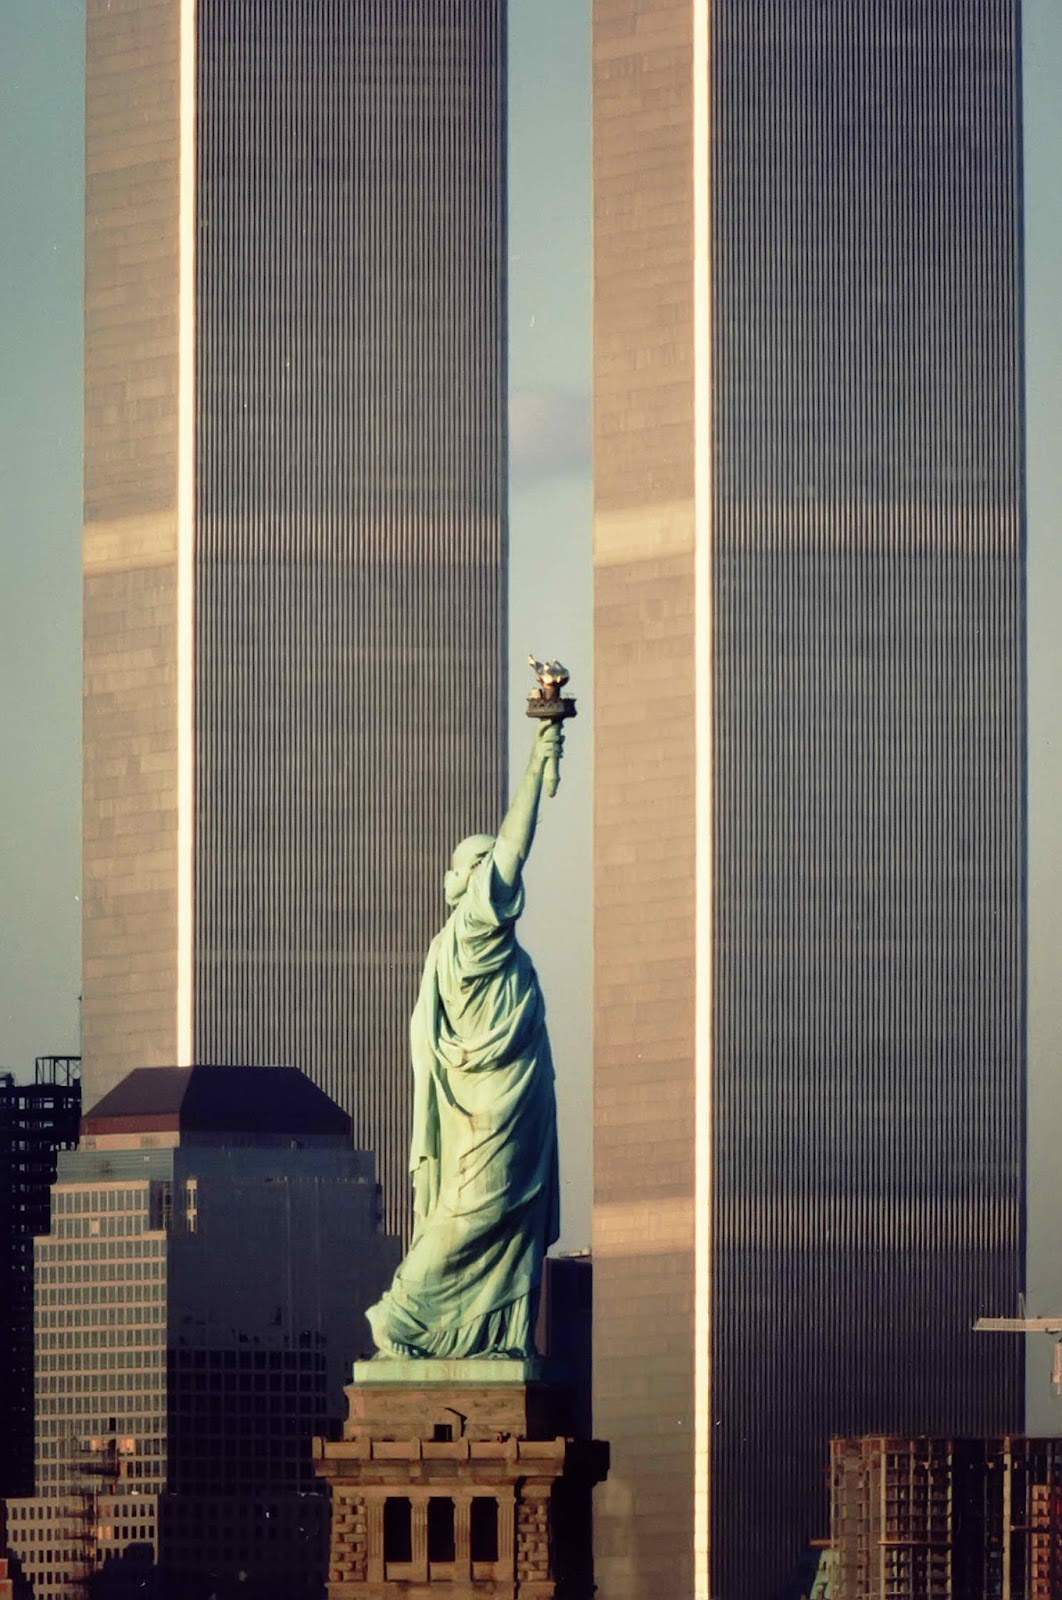 The Statue of Liberty, flanked by the twin towers of the World Trade Center, New York, USA, 1983.